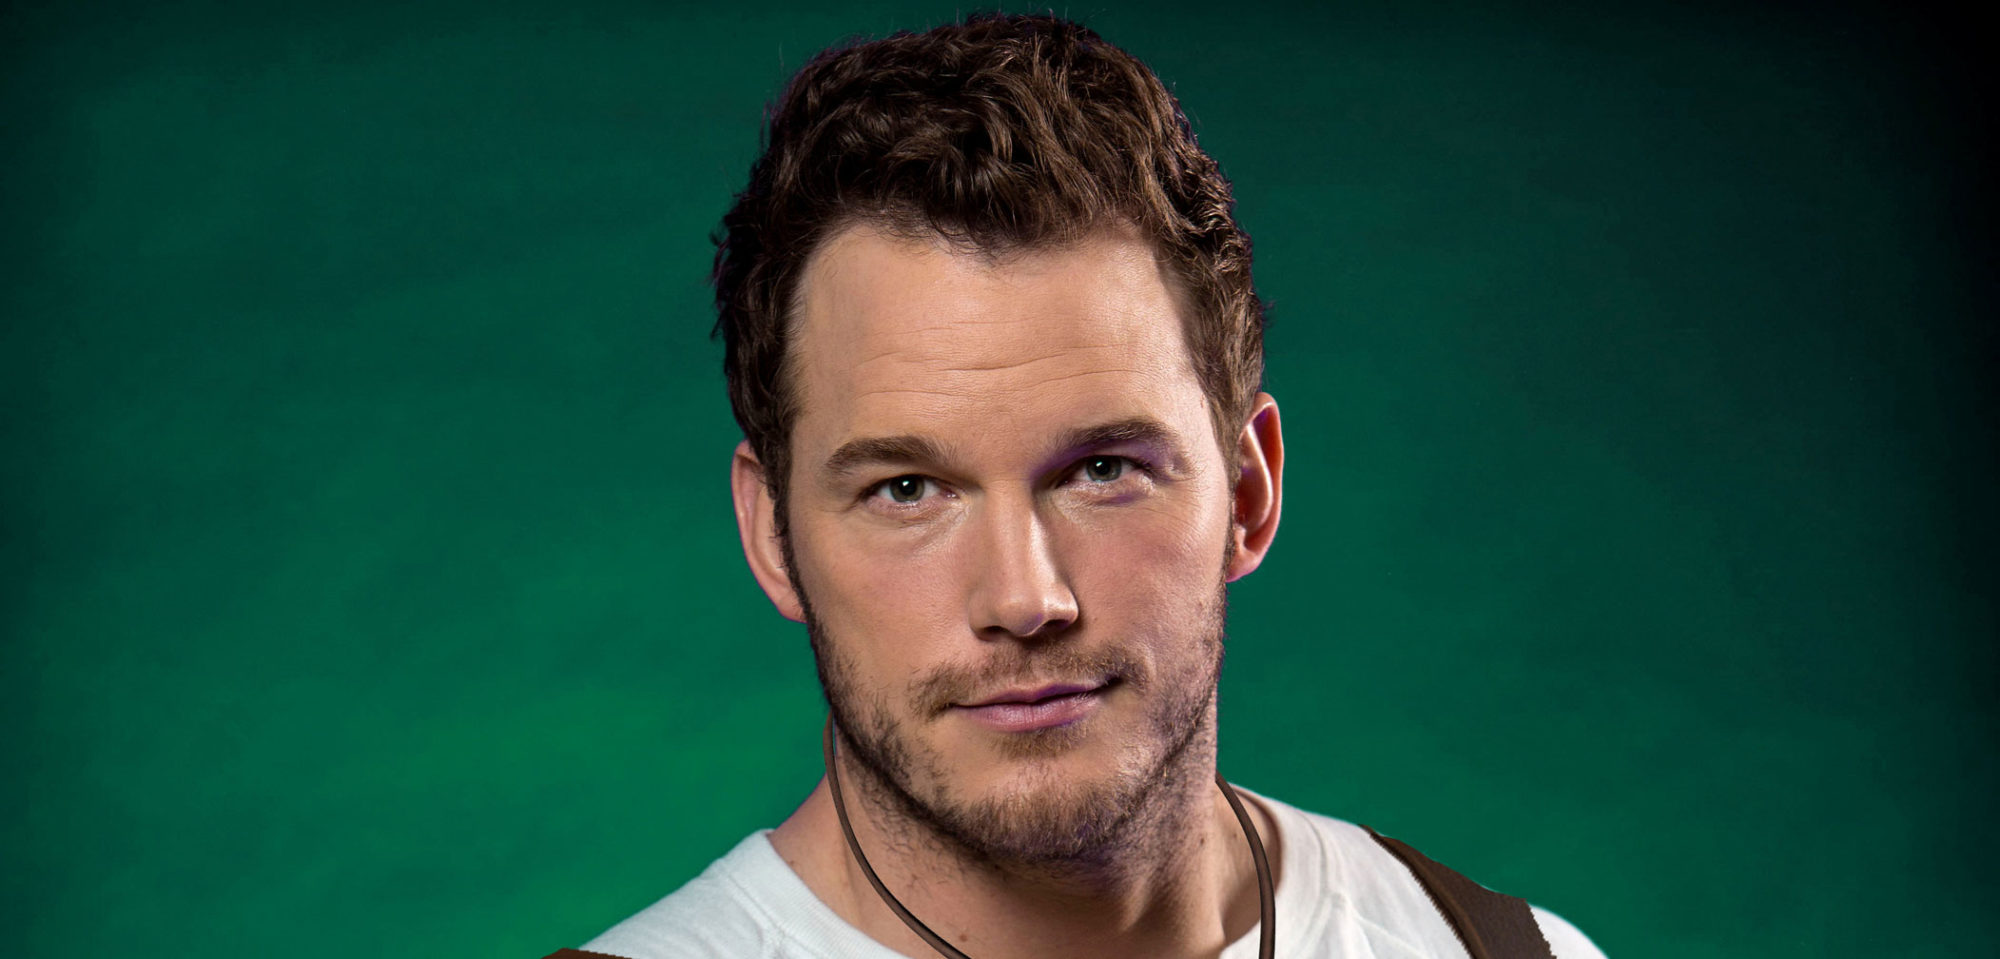 Chris Pratt Nude: His 'Passengers' Shower Scene Shows Off an Interstellar Butt (Photos)